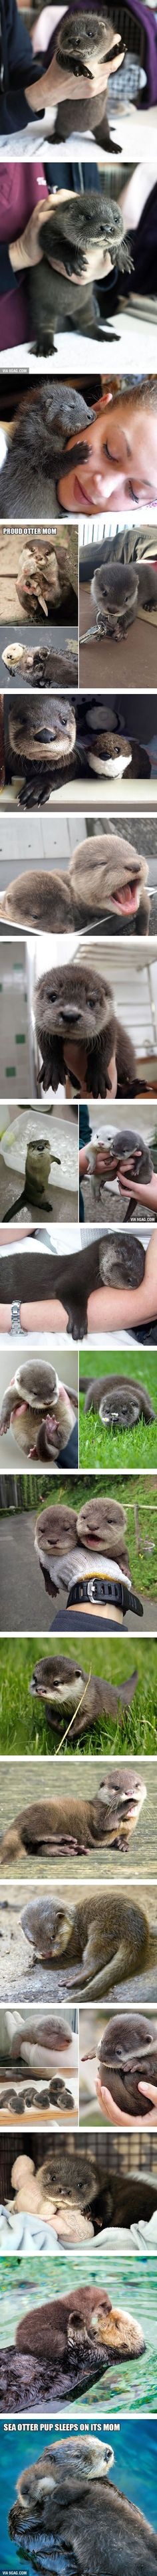 Cuteness overloaded! Baby Otters too otterable !! - 9GAG